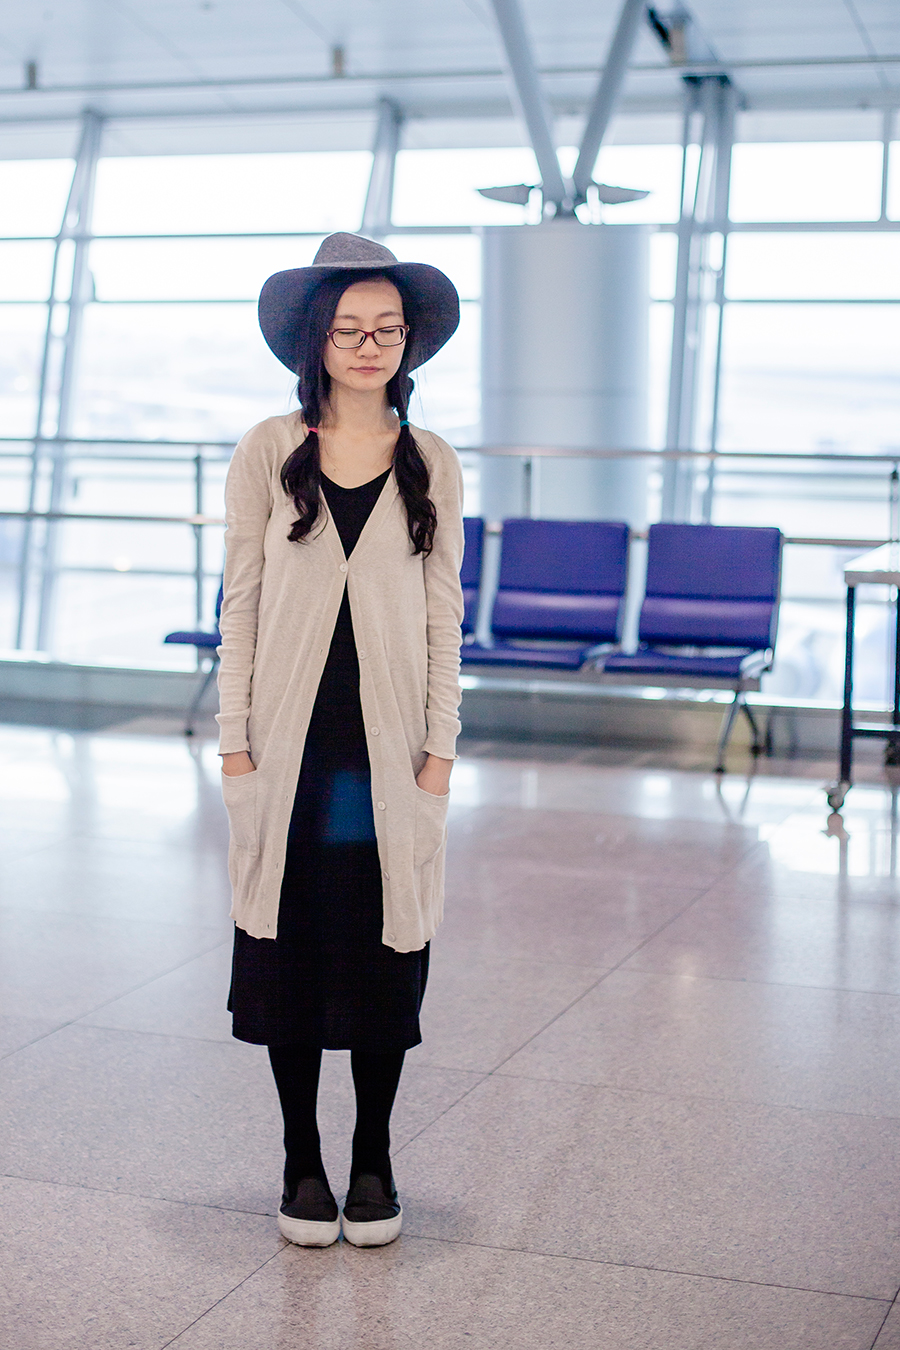 Airport outfit: Zara long cardigan, GU wool hat, Spurr shoes.